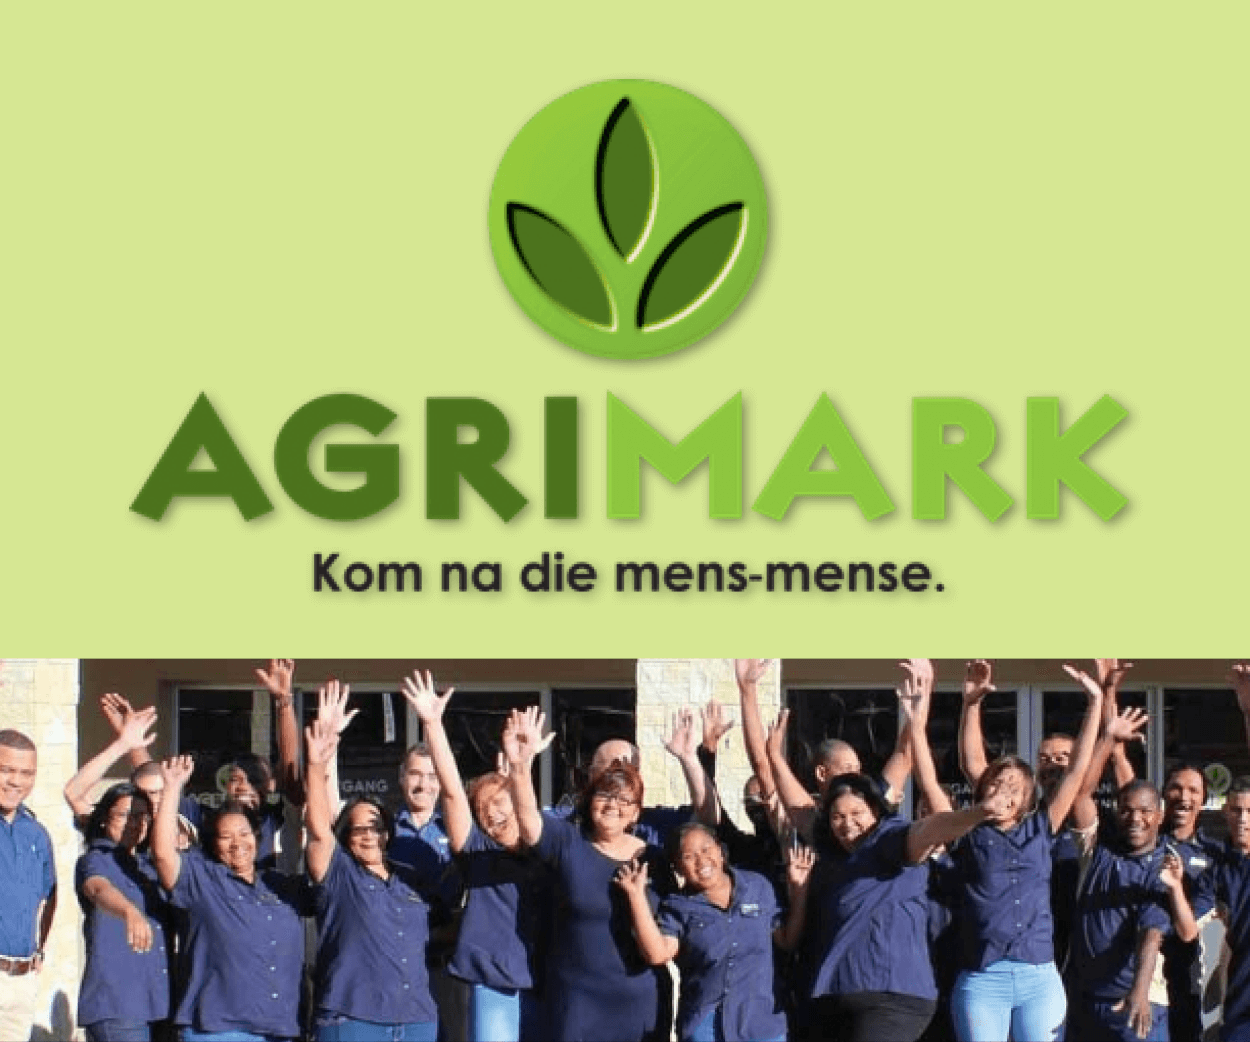 Agrimark – Rectangle – Regional rectangle 7